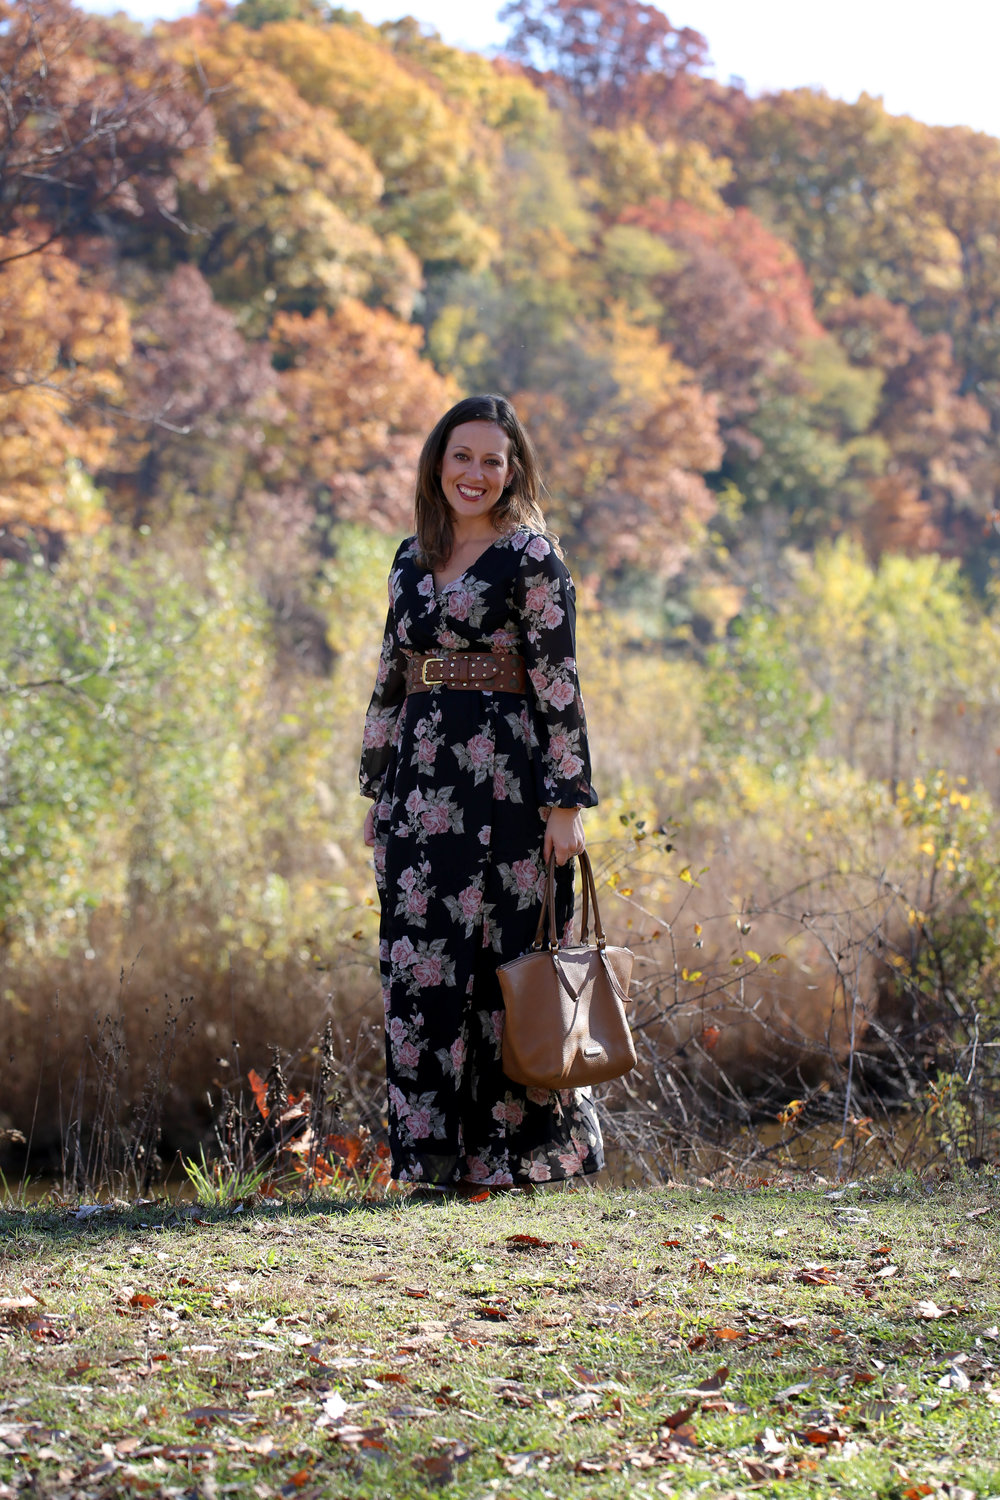 fall floral maxi dress outfit, fall florals, fall fashion, maxi dress, floral dress, how to wear one piece multiple ways, accessorize with belts, autumn style, florals for women,